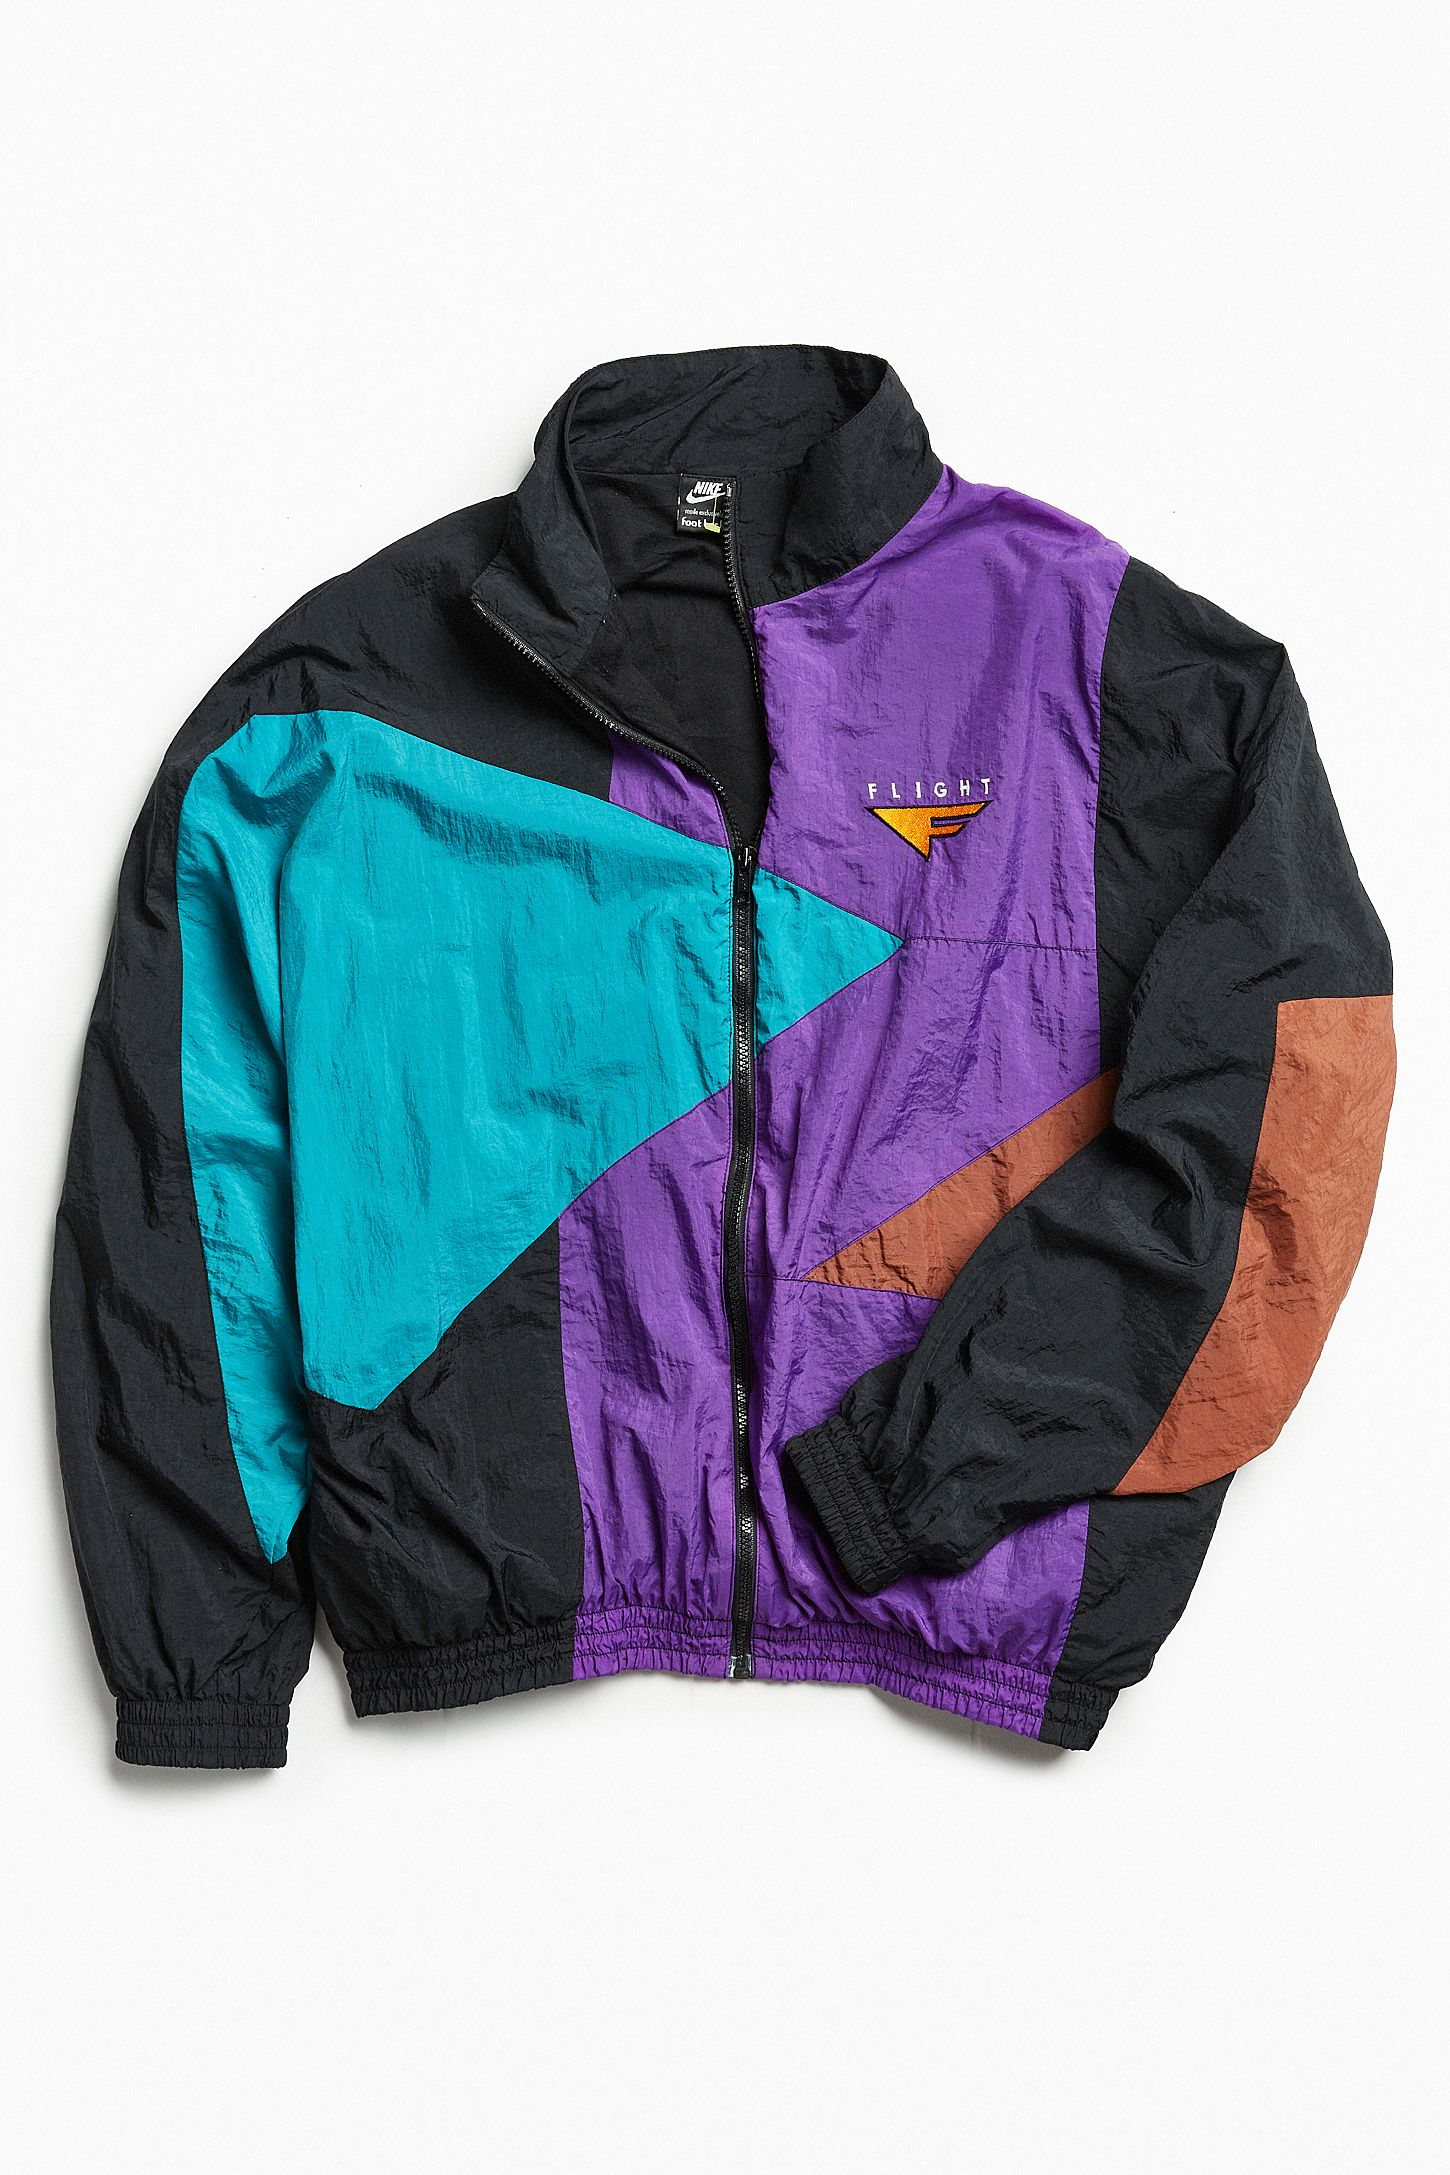 Vintage Nike Purple Windbreaker Jacket  84224b2e6